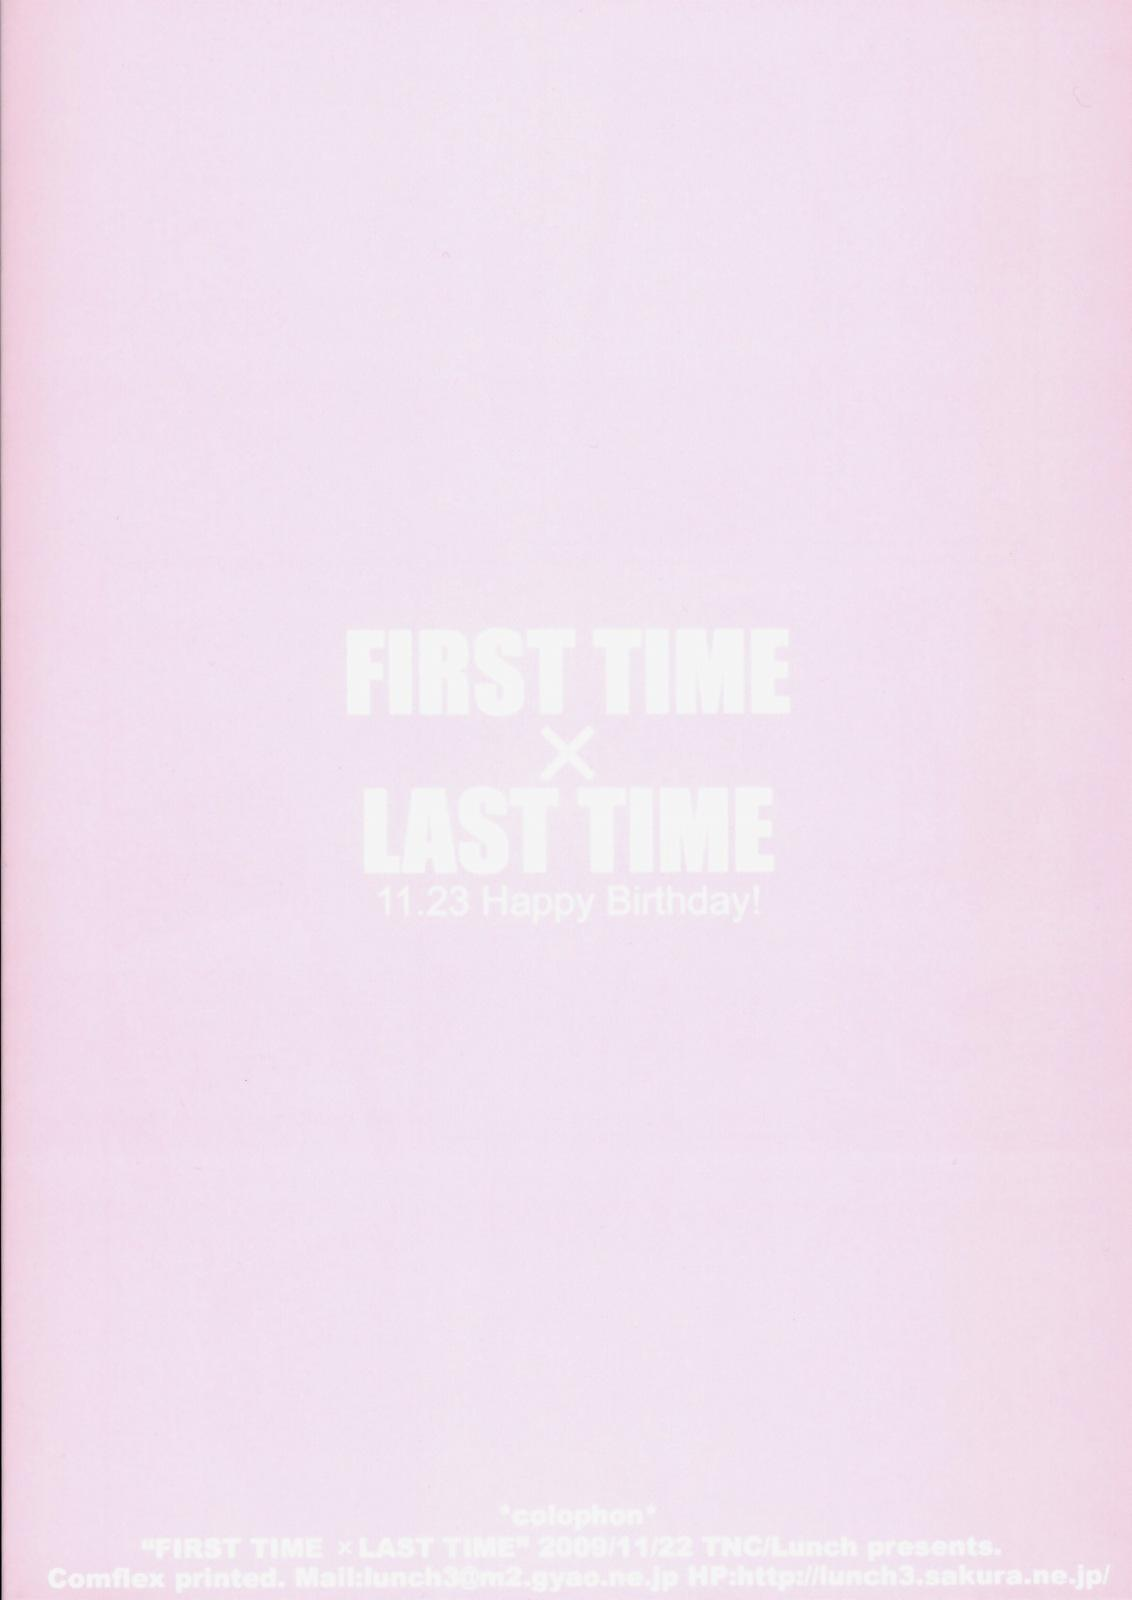 FIRST TIME × LAST TIME 37